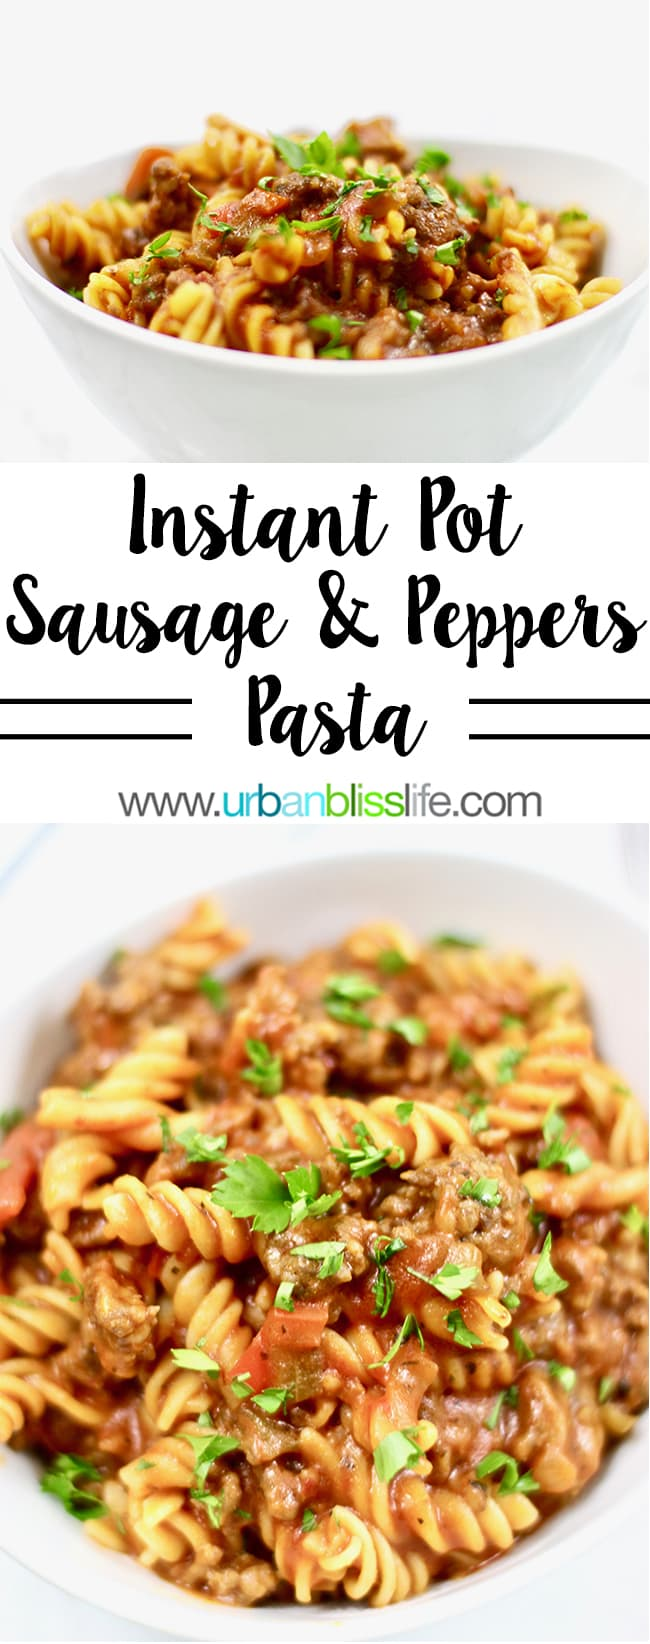 Instant Pot Sausage Peppers & Pasta